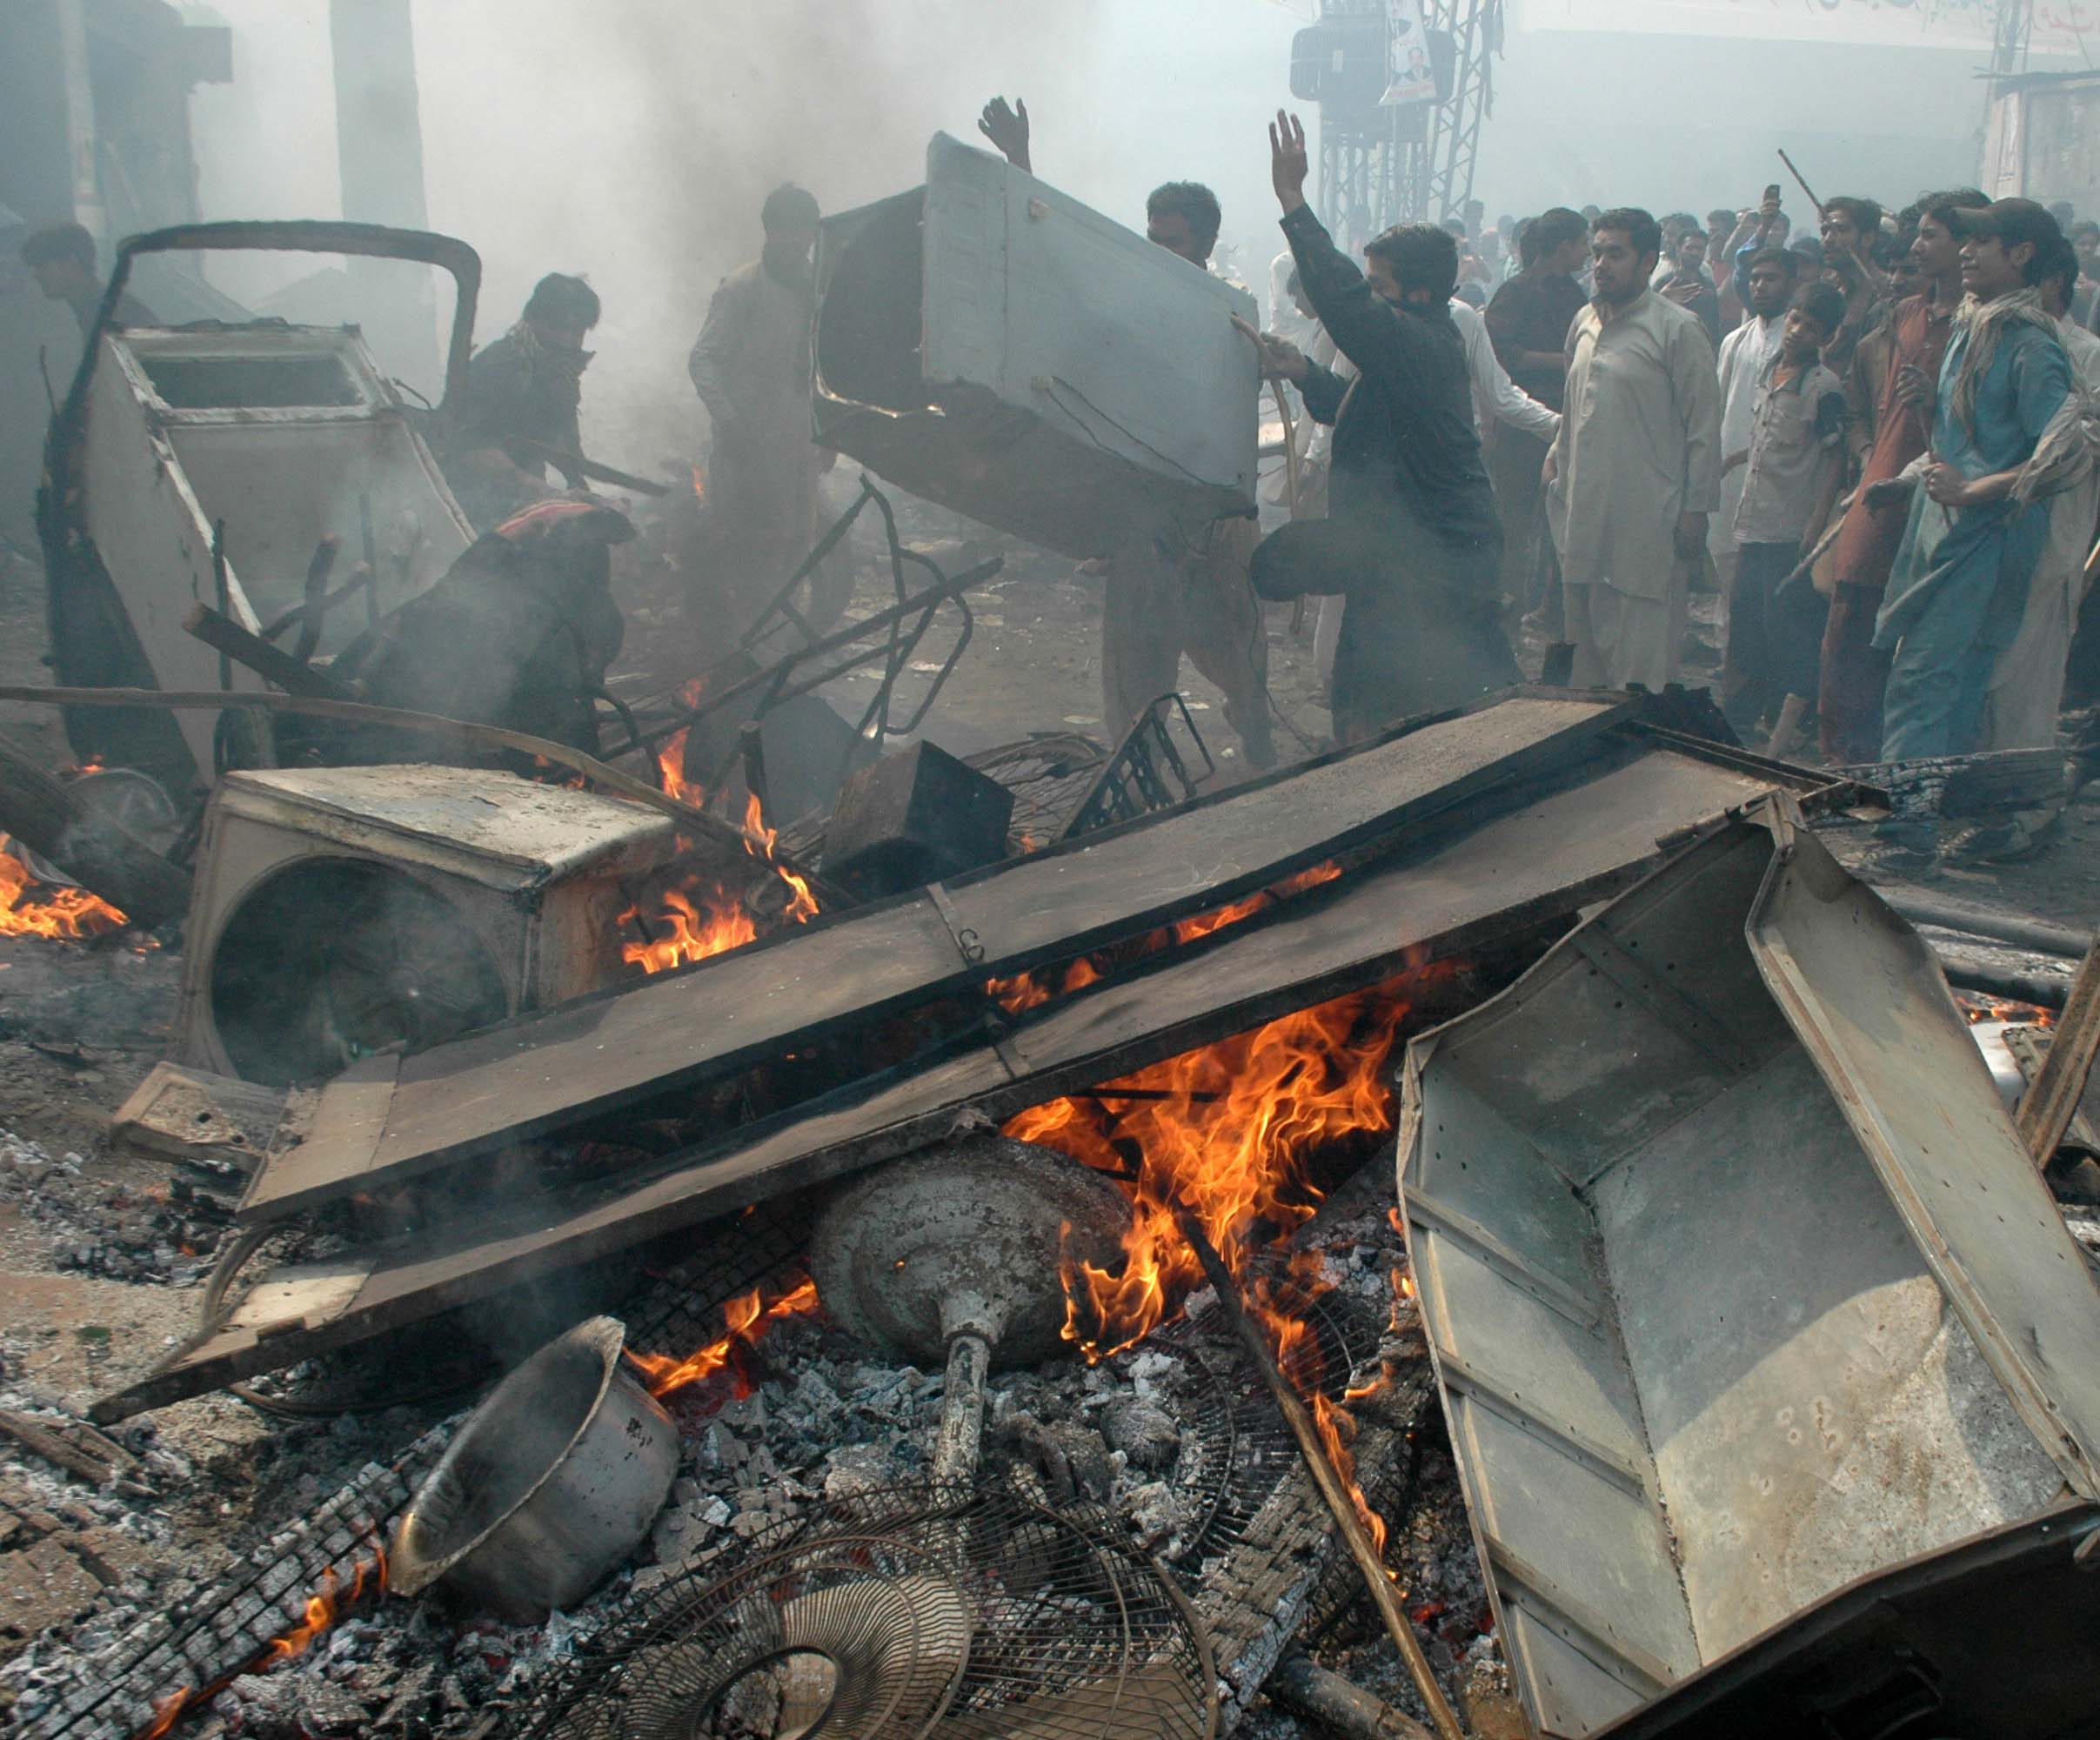 Muslim mobs attack a Christian area of Lahore after blasphemy allegation. (Photo by M. Ali)